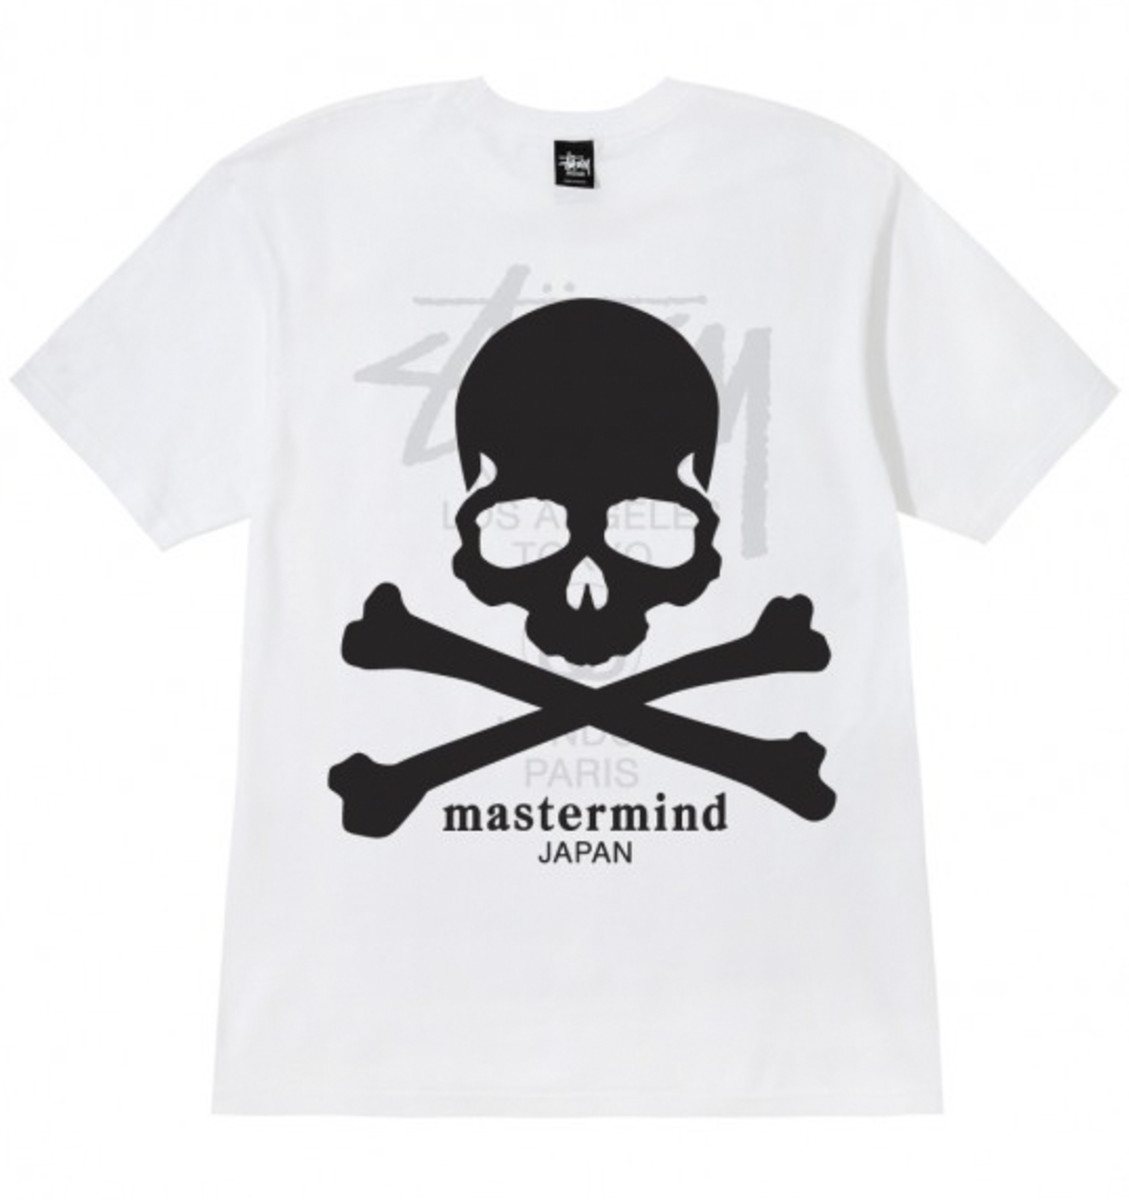 stussy-mastermind-japan-release-1-available-now-03